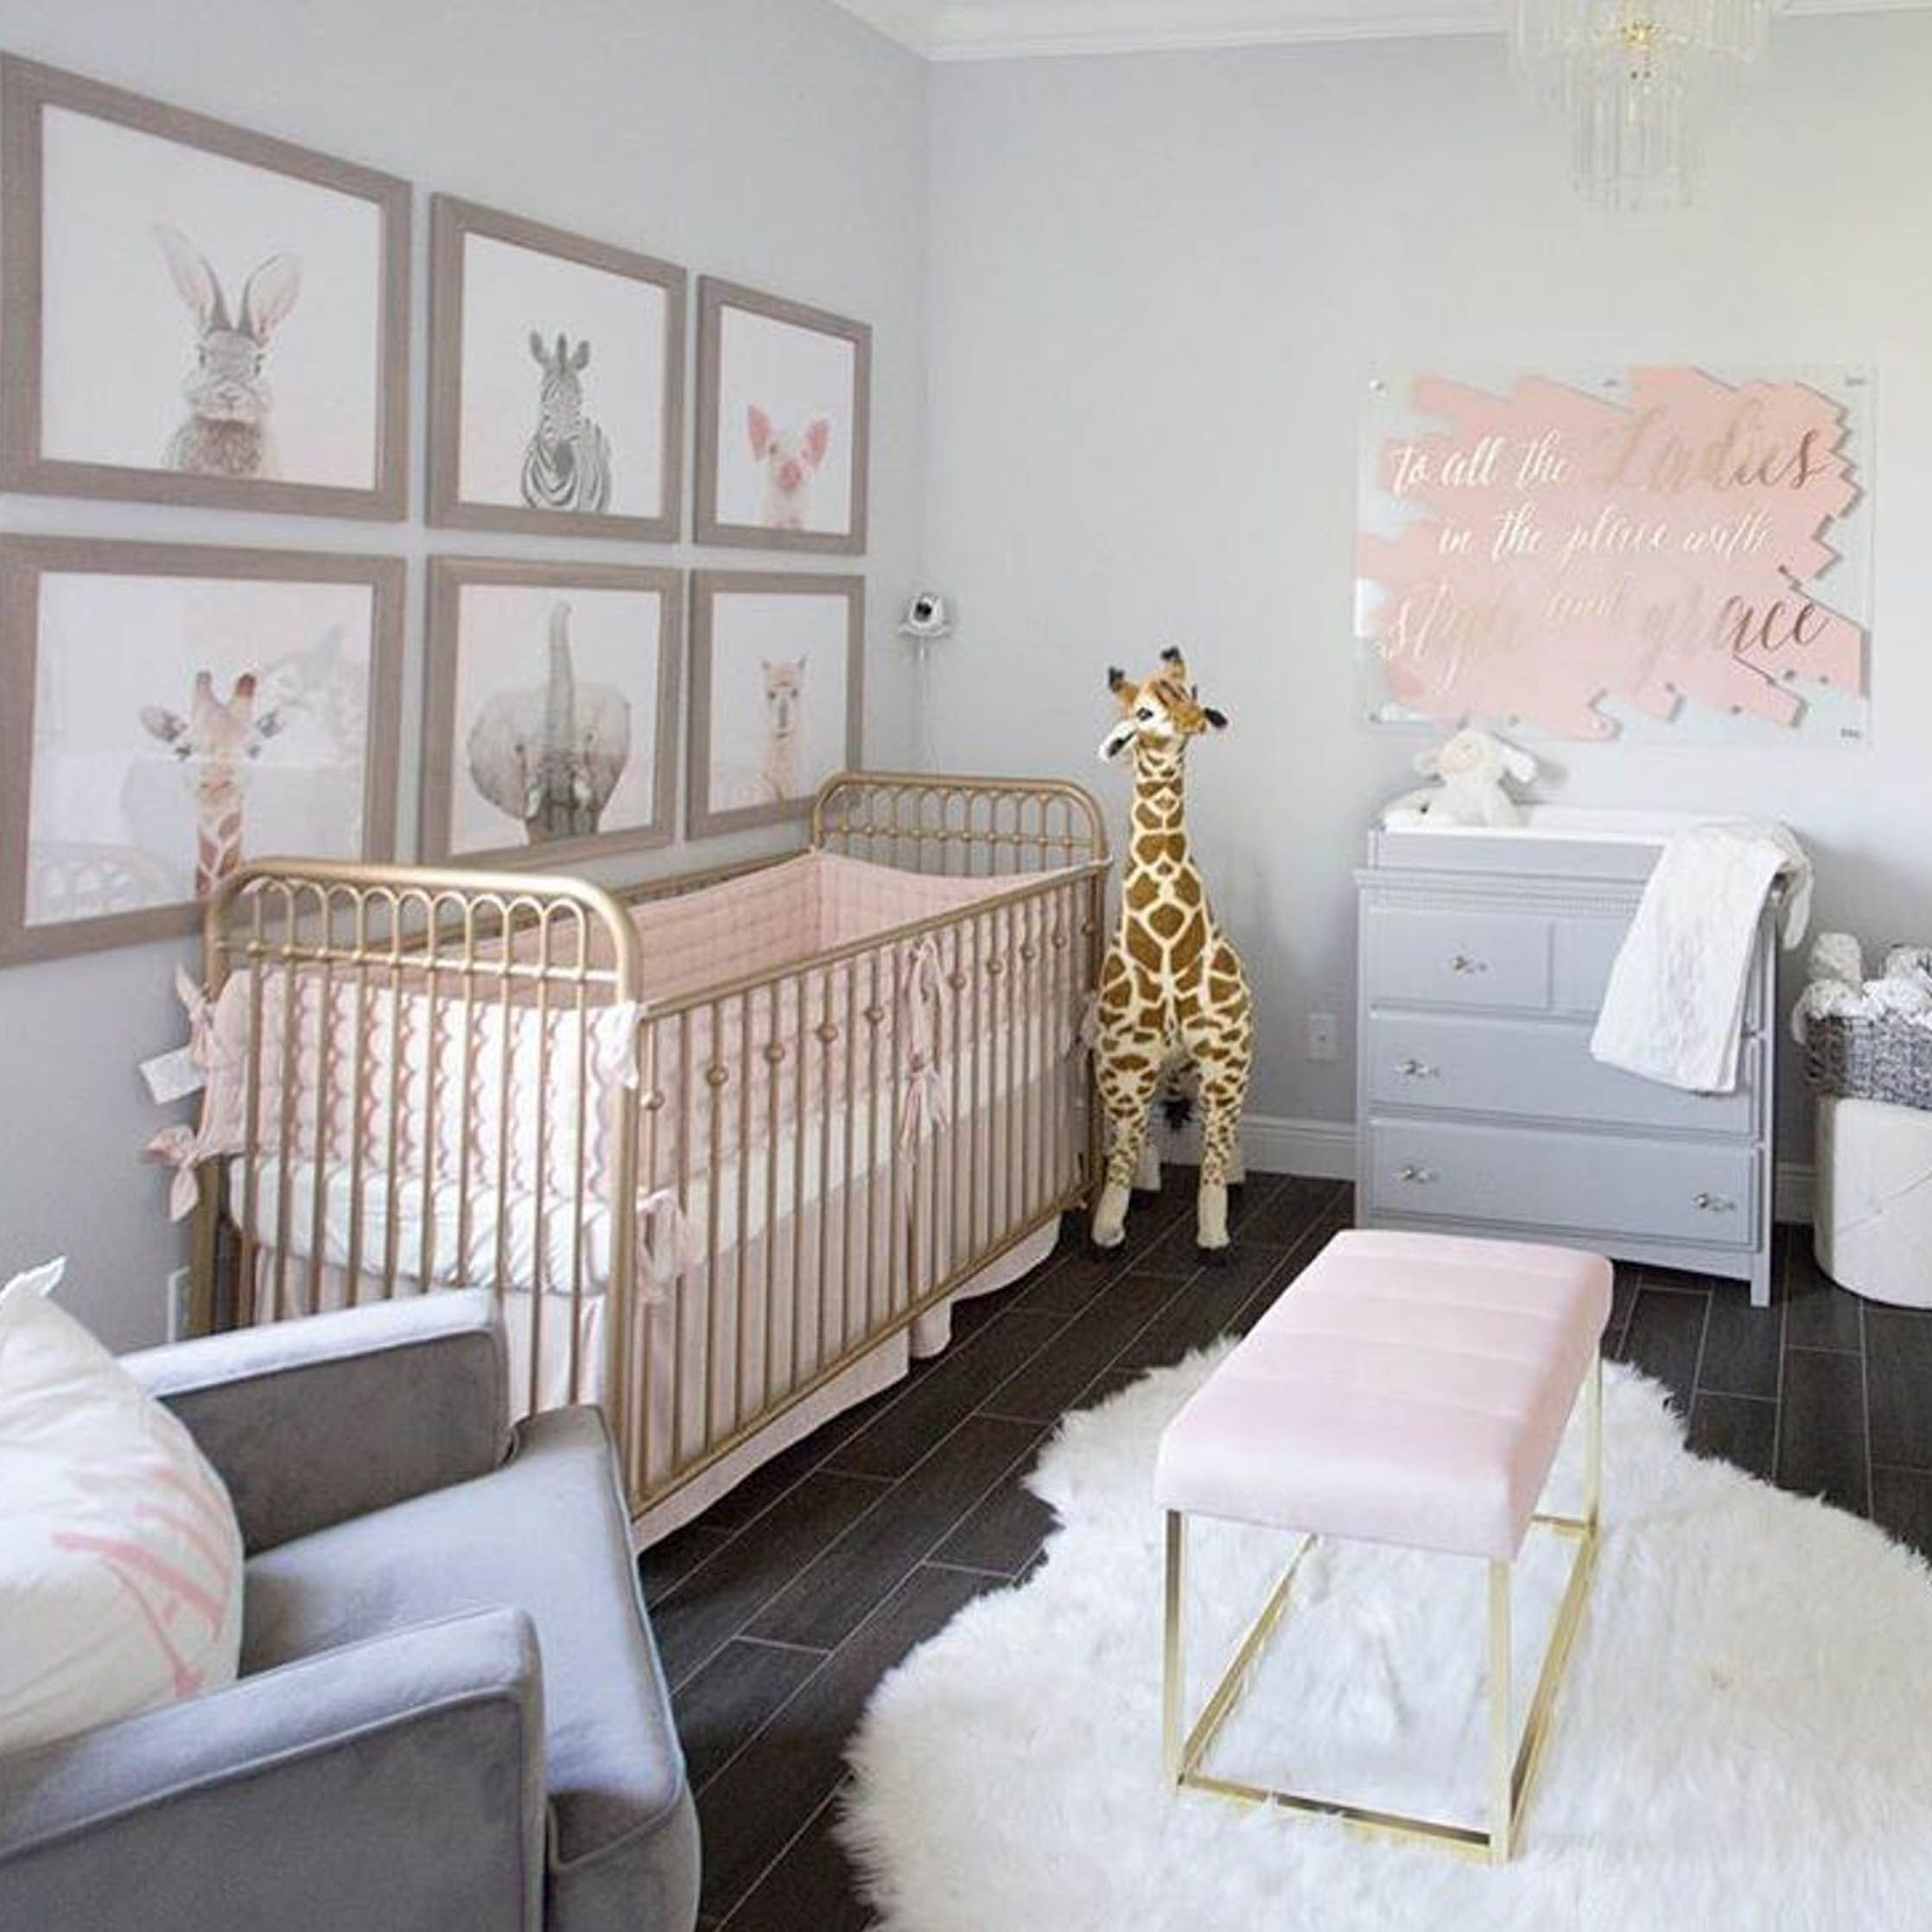 Here's What's Trending in the Nursery